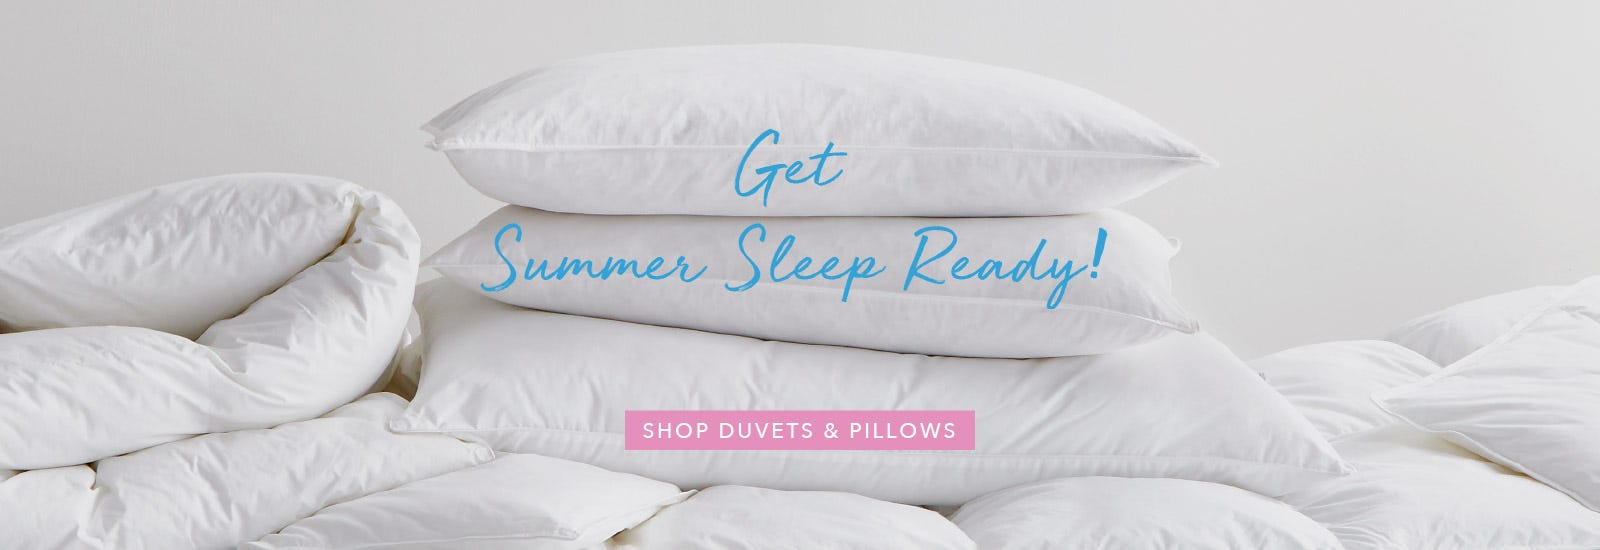 Bedeck Duvets & Pillows